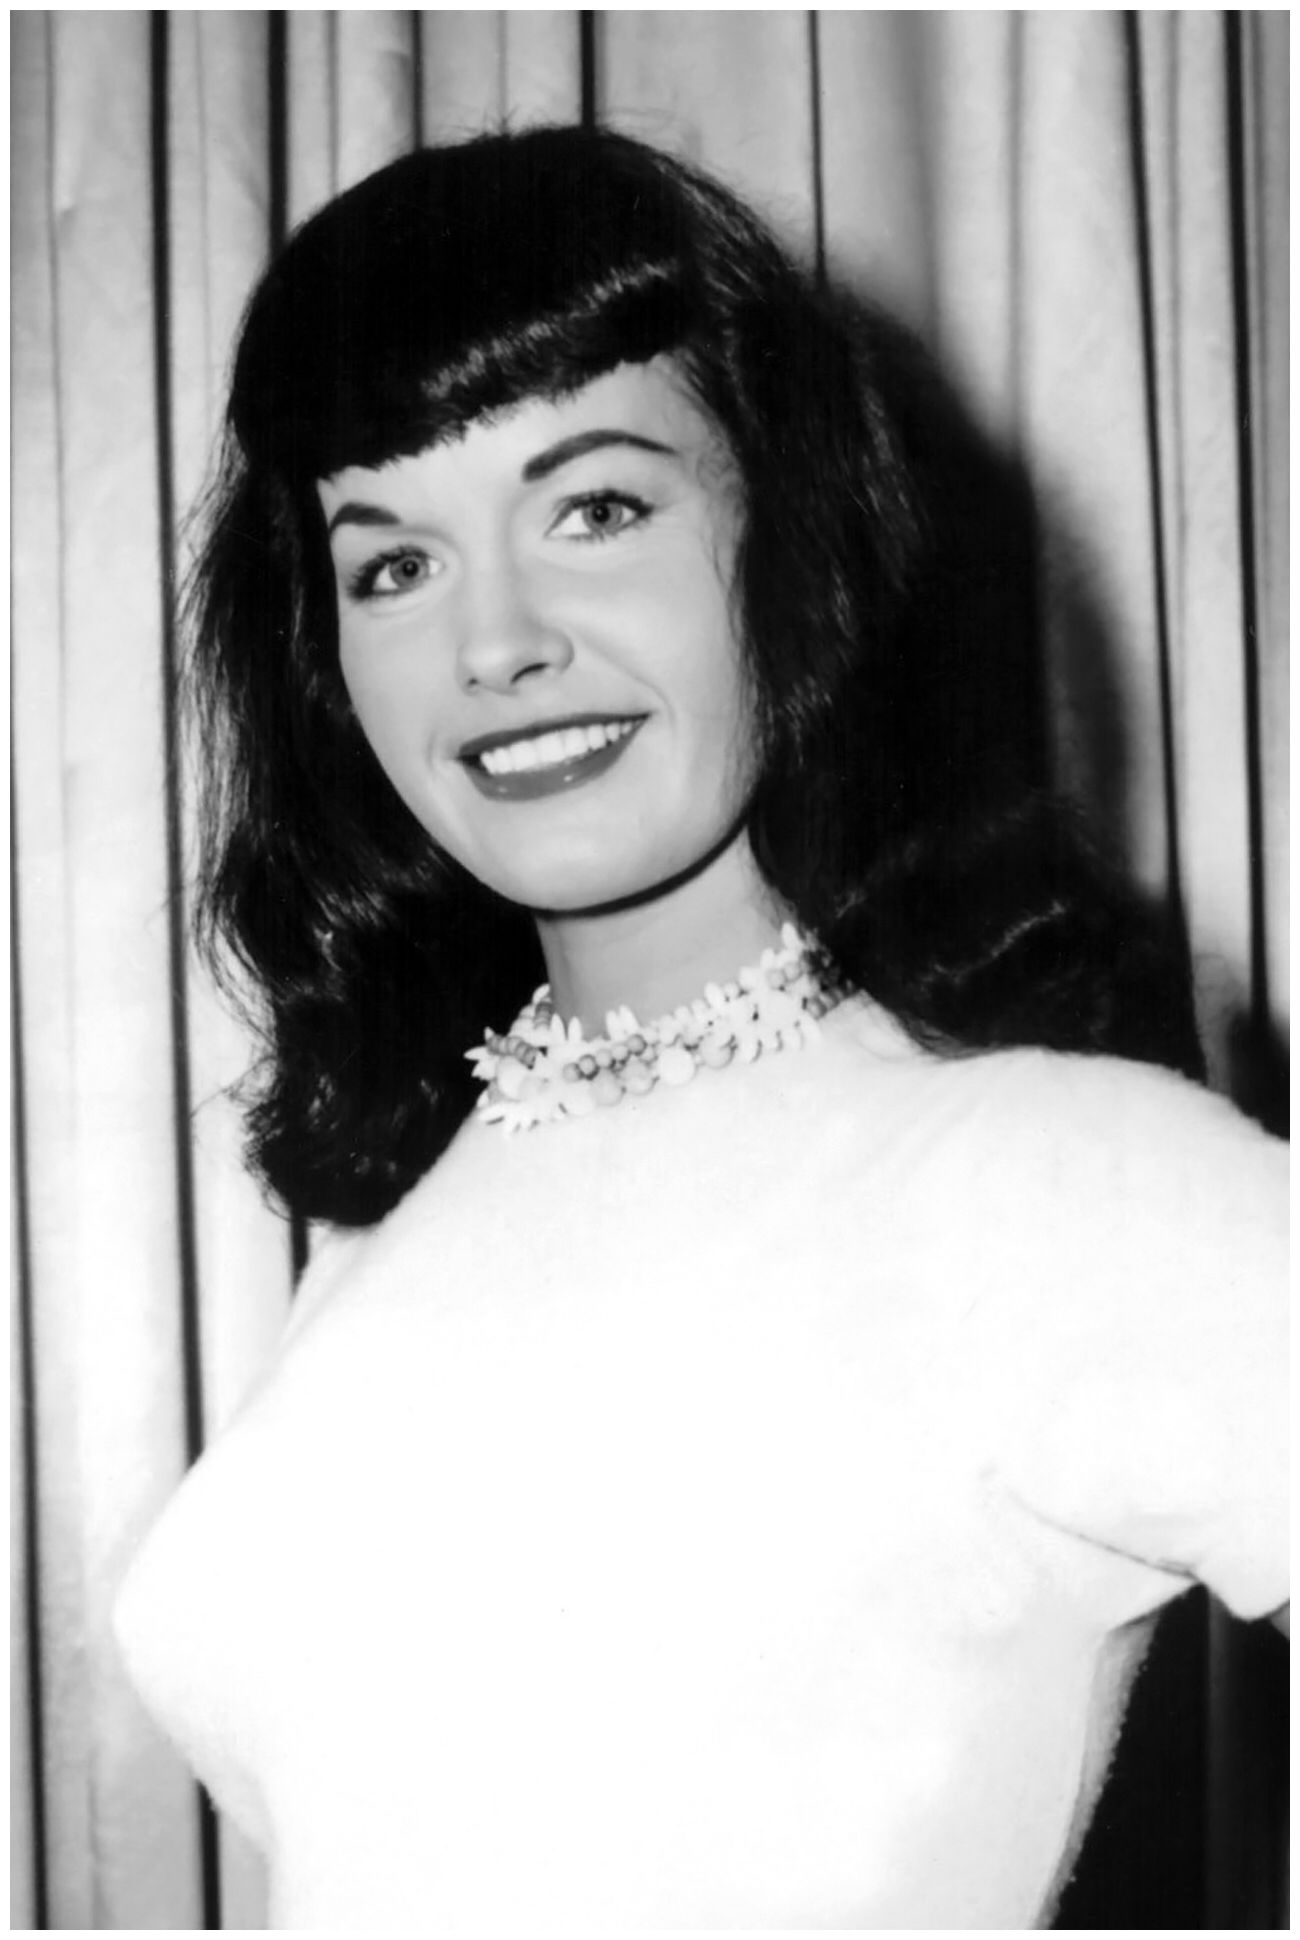 Imagen de https://pinupmonster.files.wordpress.com/2015/04/bettie-page-e28093-a-heavy-rolled-fringe-and-dark-waves-were-the-basis-of-bettie-page_s-famous-hairstyle-1950s.jpg.